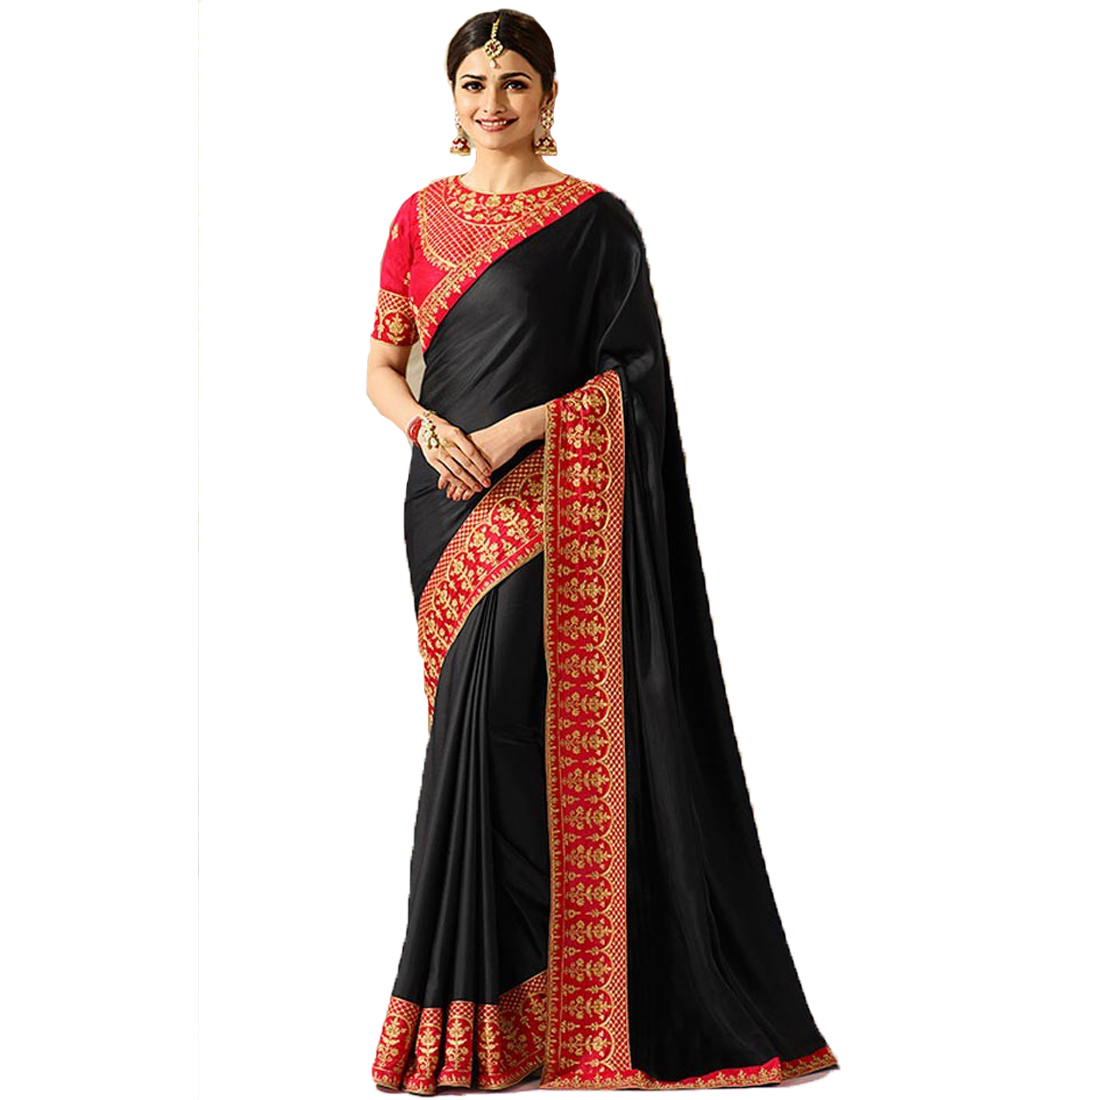 f5f772d1ffc7f8 Black embroidered faux georgette saree with blouse - Mannequin Store -  2743276